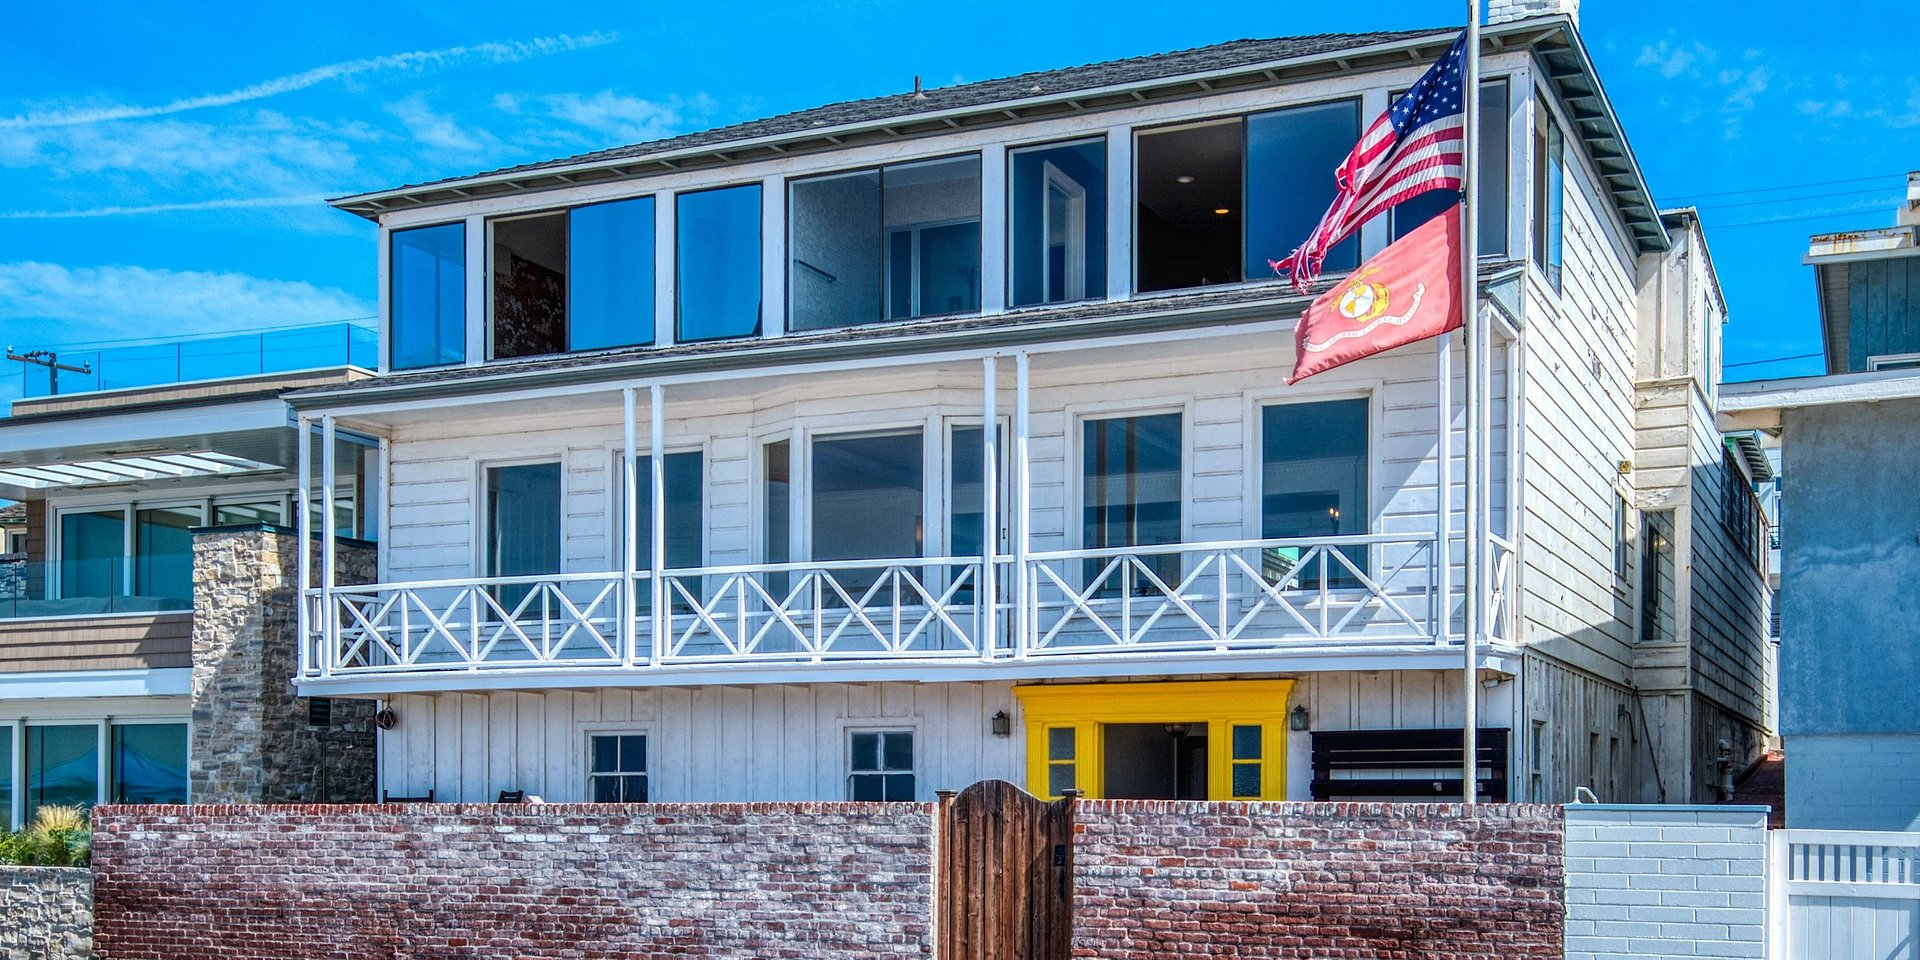 Coldwell Banker Realty Lists a Beachfront Hermosa Beach Property for $14.8 Million